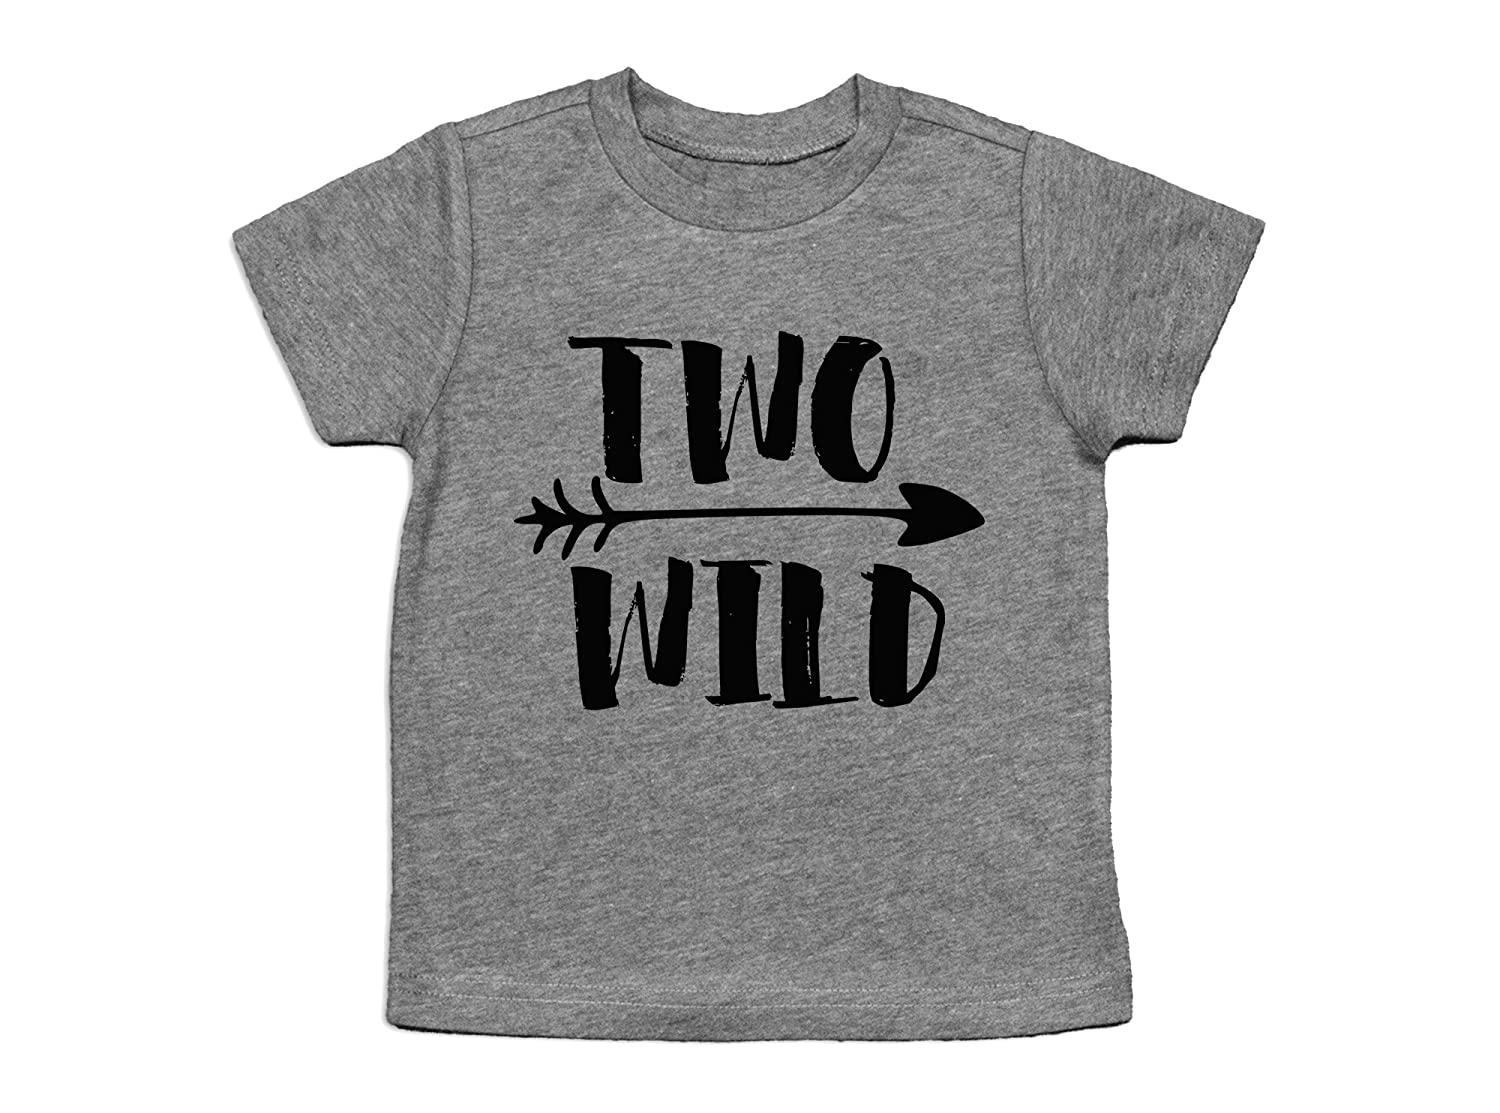 6c8558b1 This trendy two wild shirt is perfect for any wild 2 year old! They will be  the center of attention at their birthday party in this shirt.